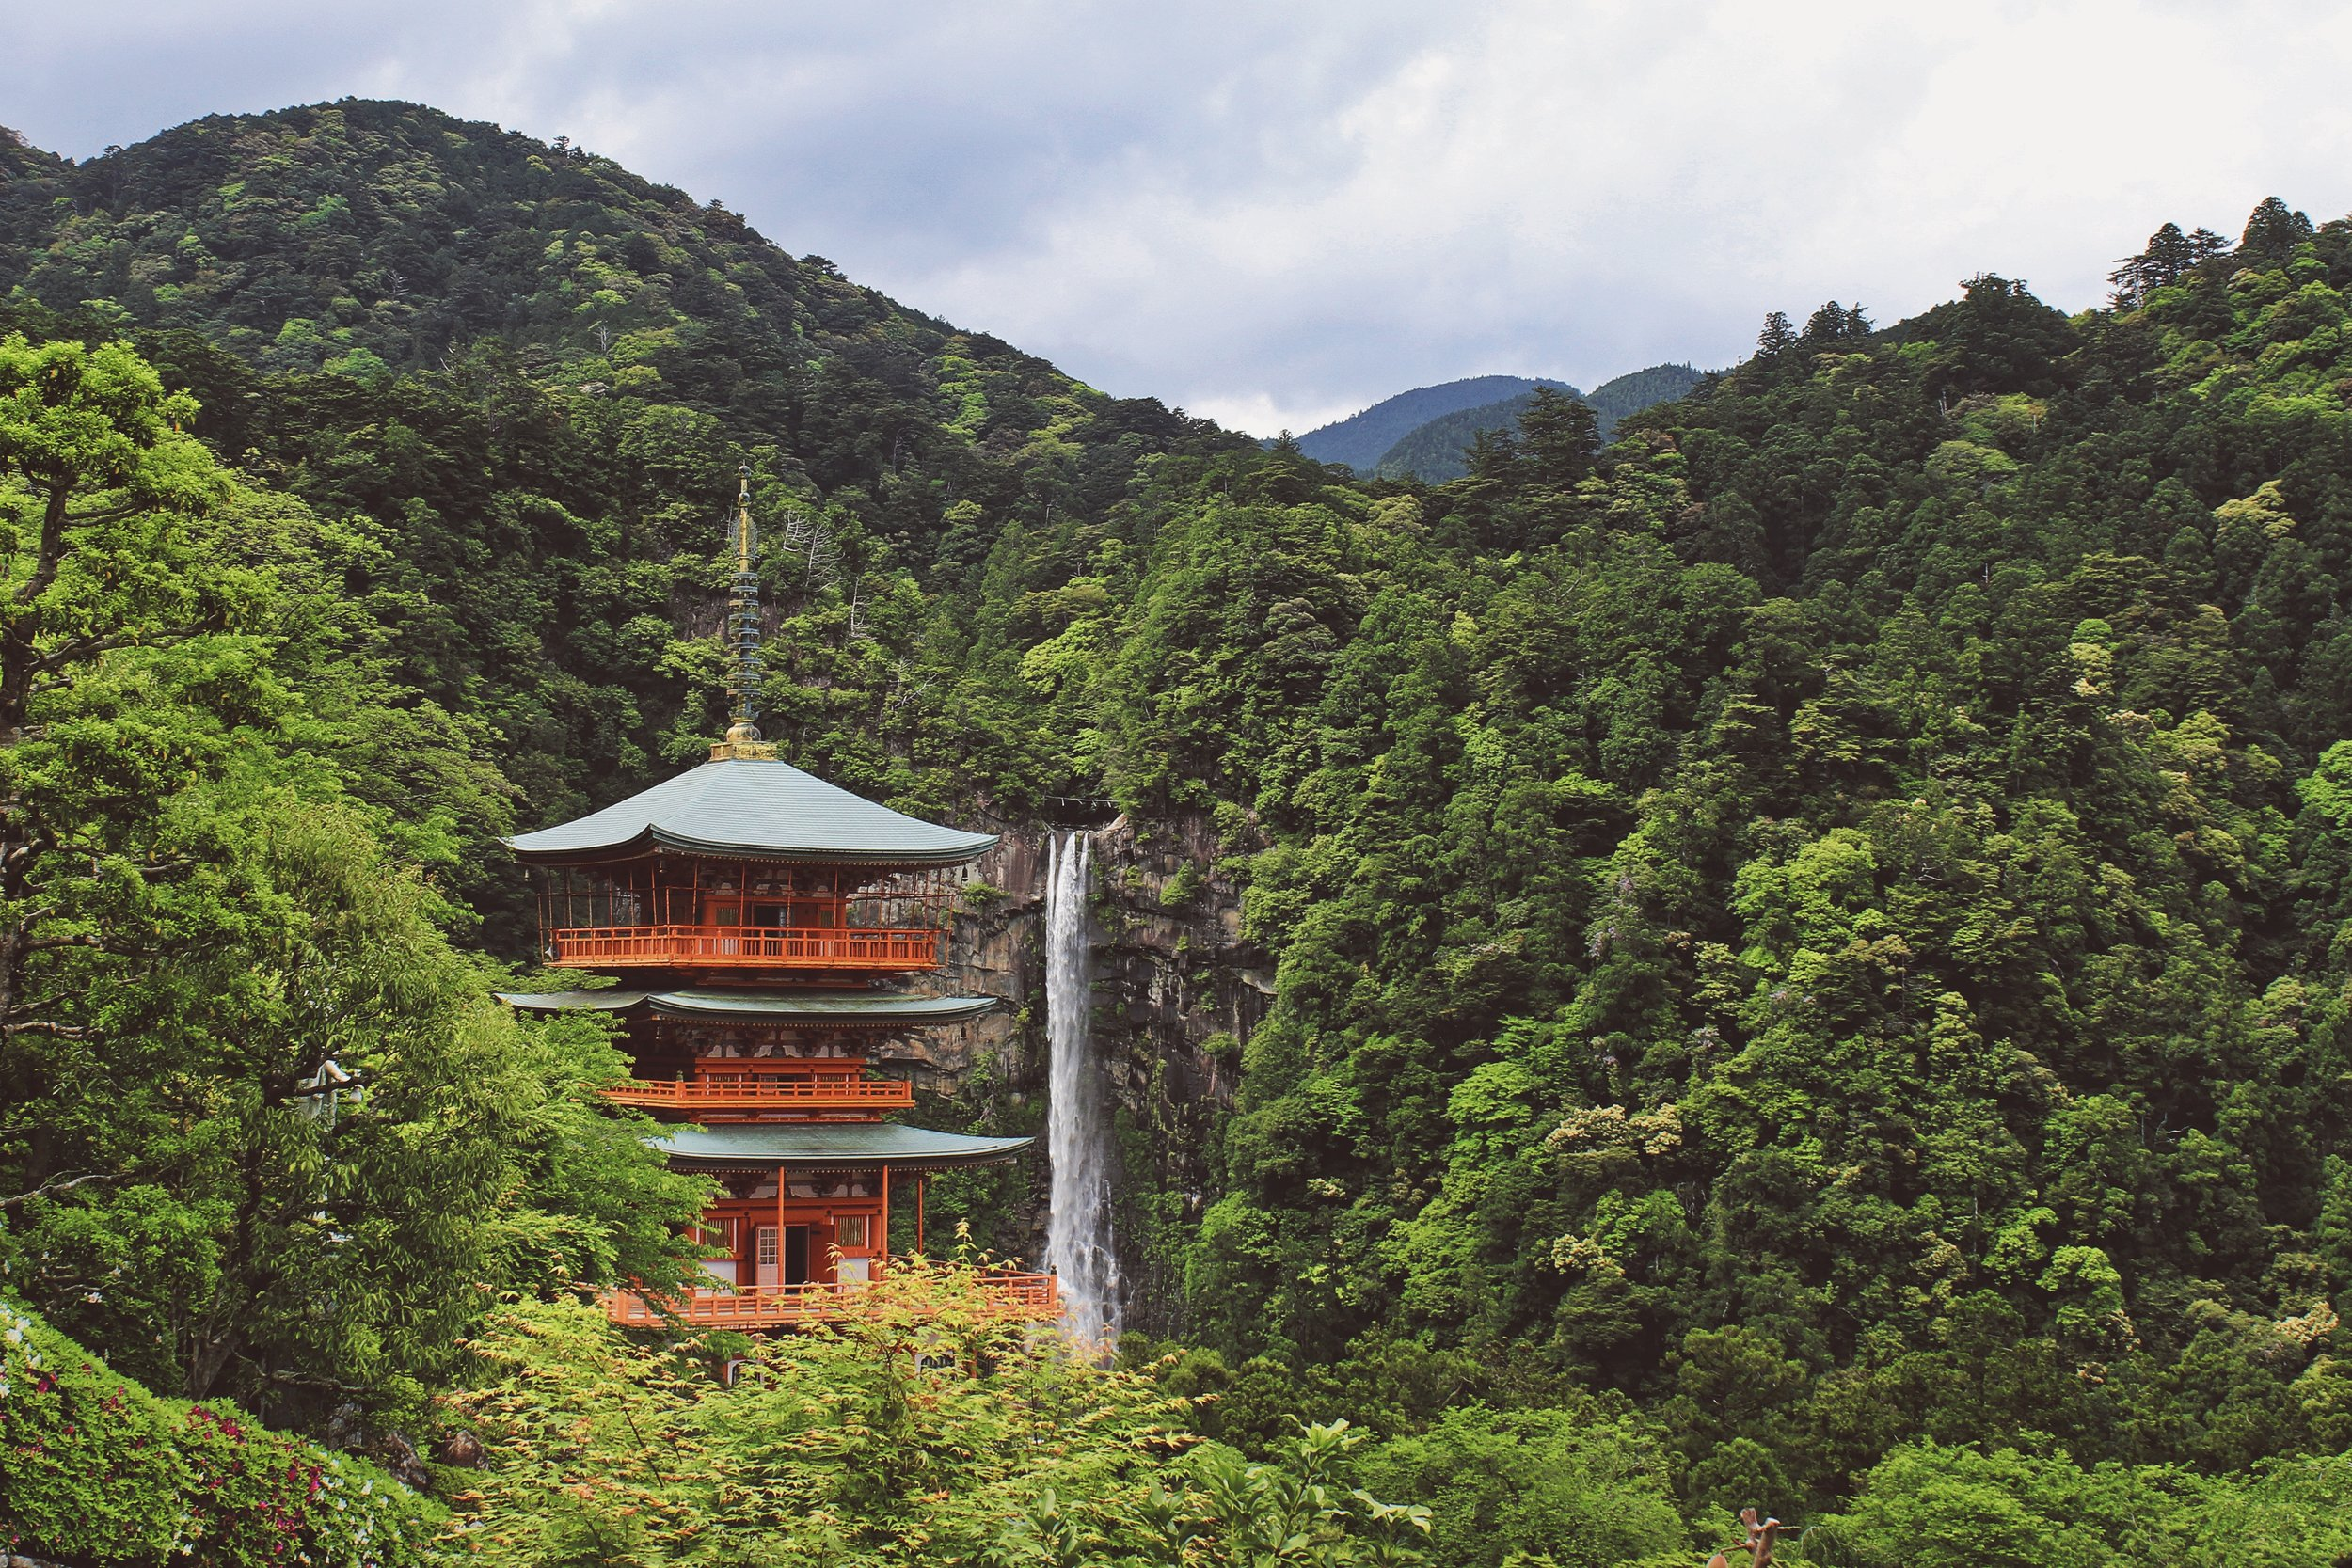 DAY 8:CHASING WATERFALLS - HONGU to NACHI